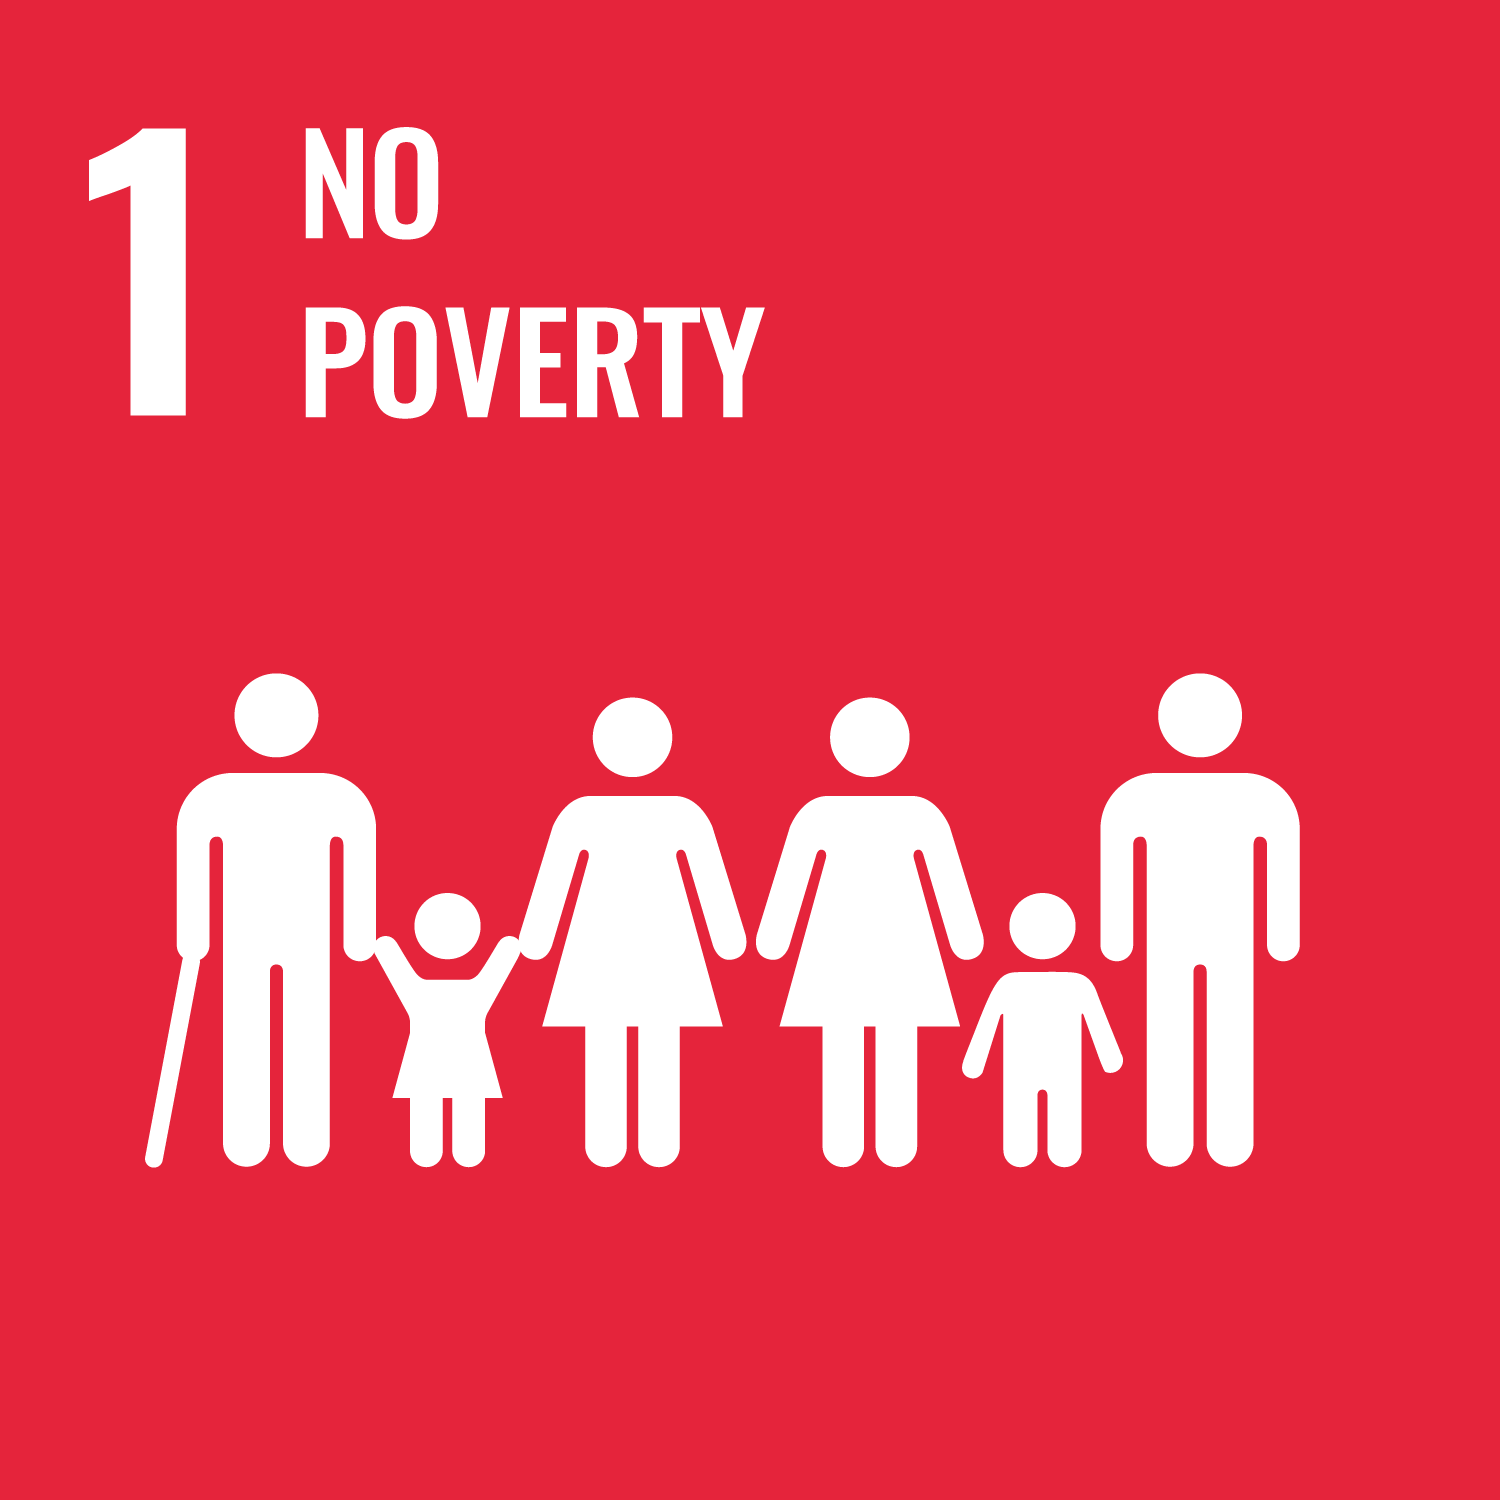 Sustainable Development Goals – No Poverty